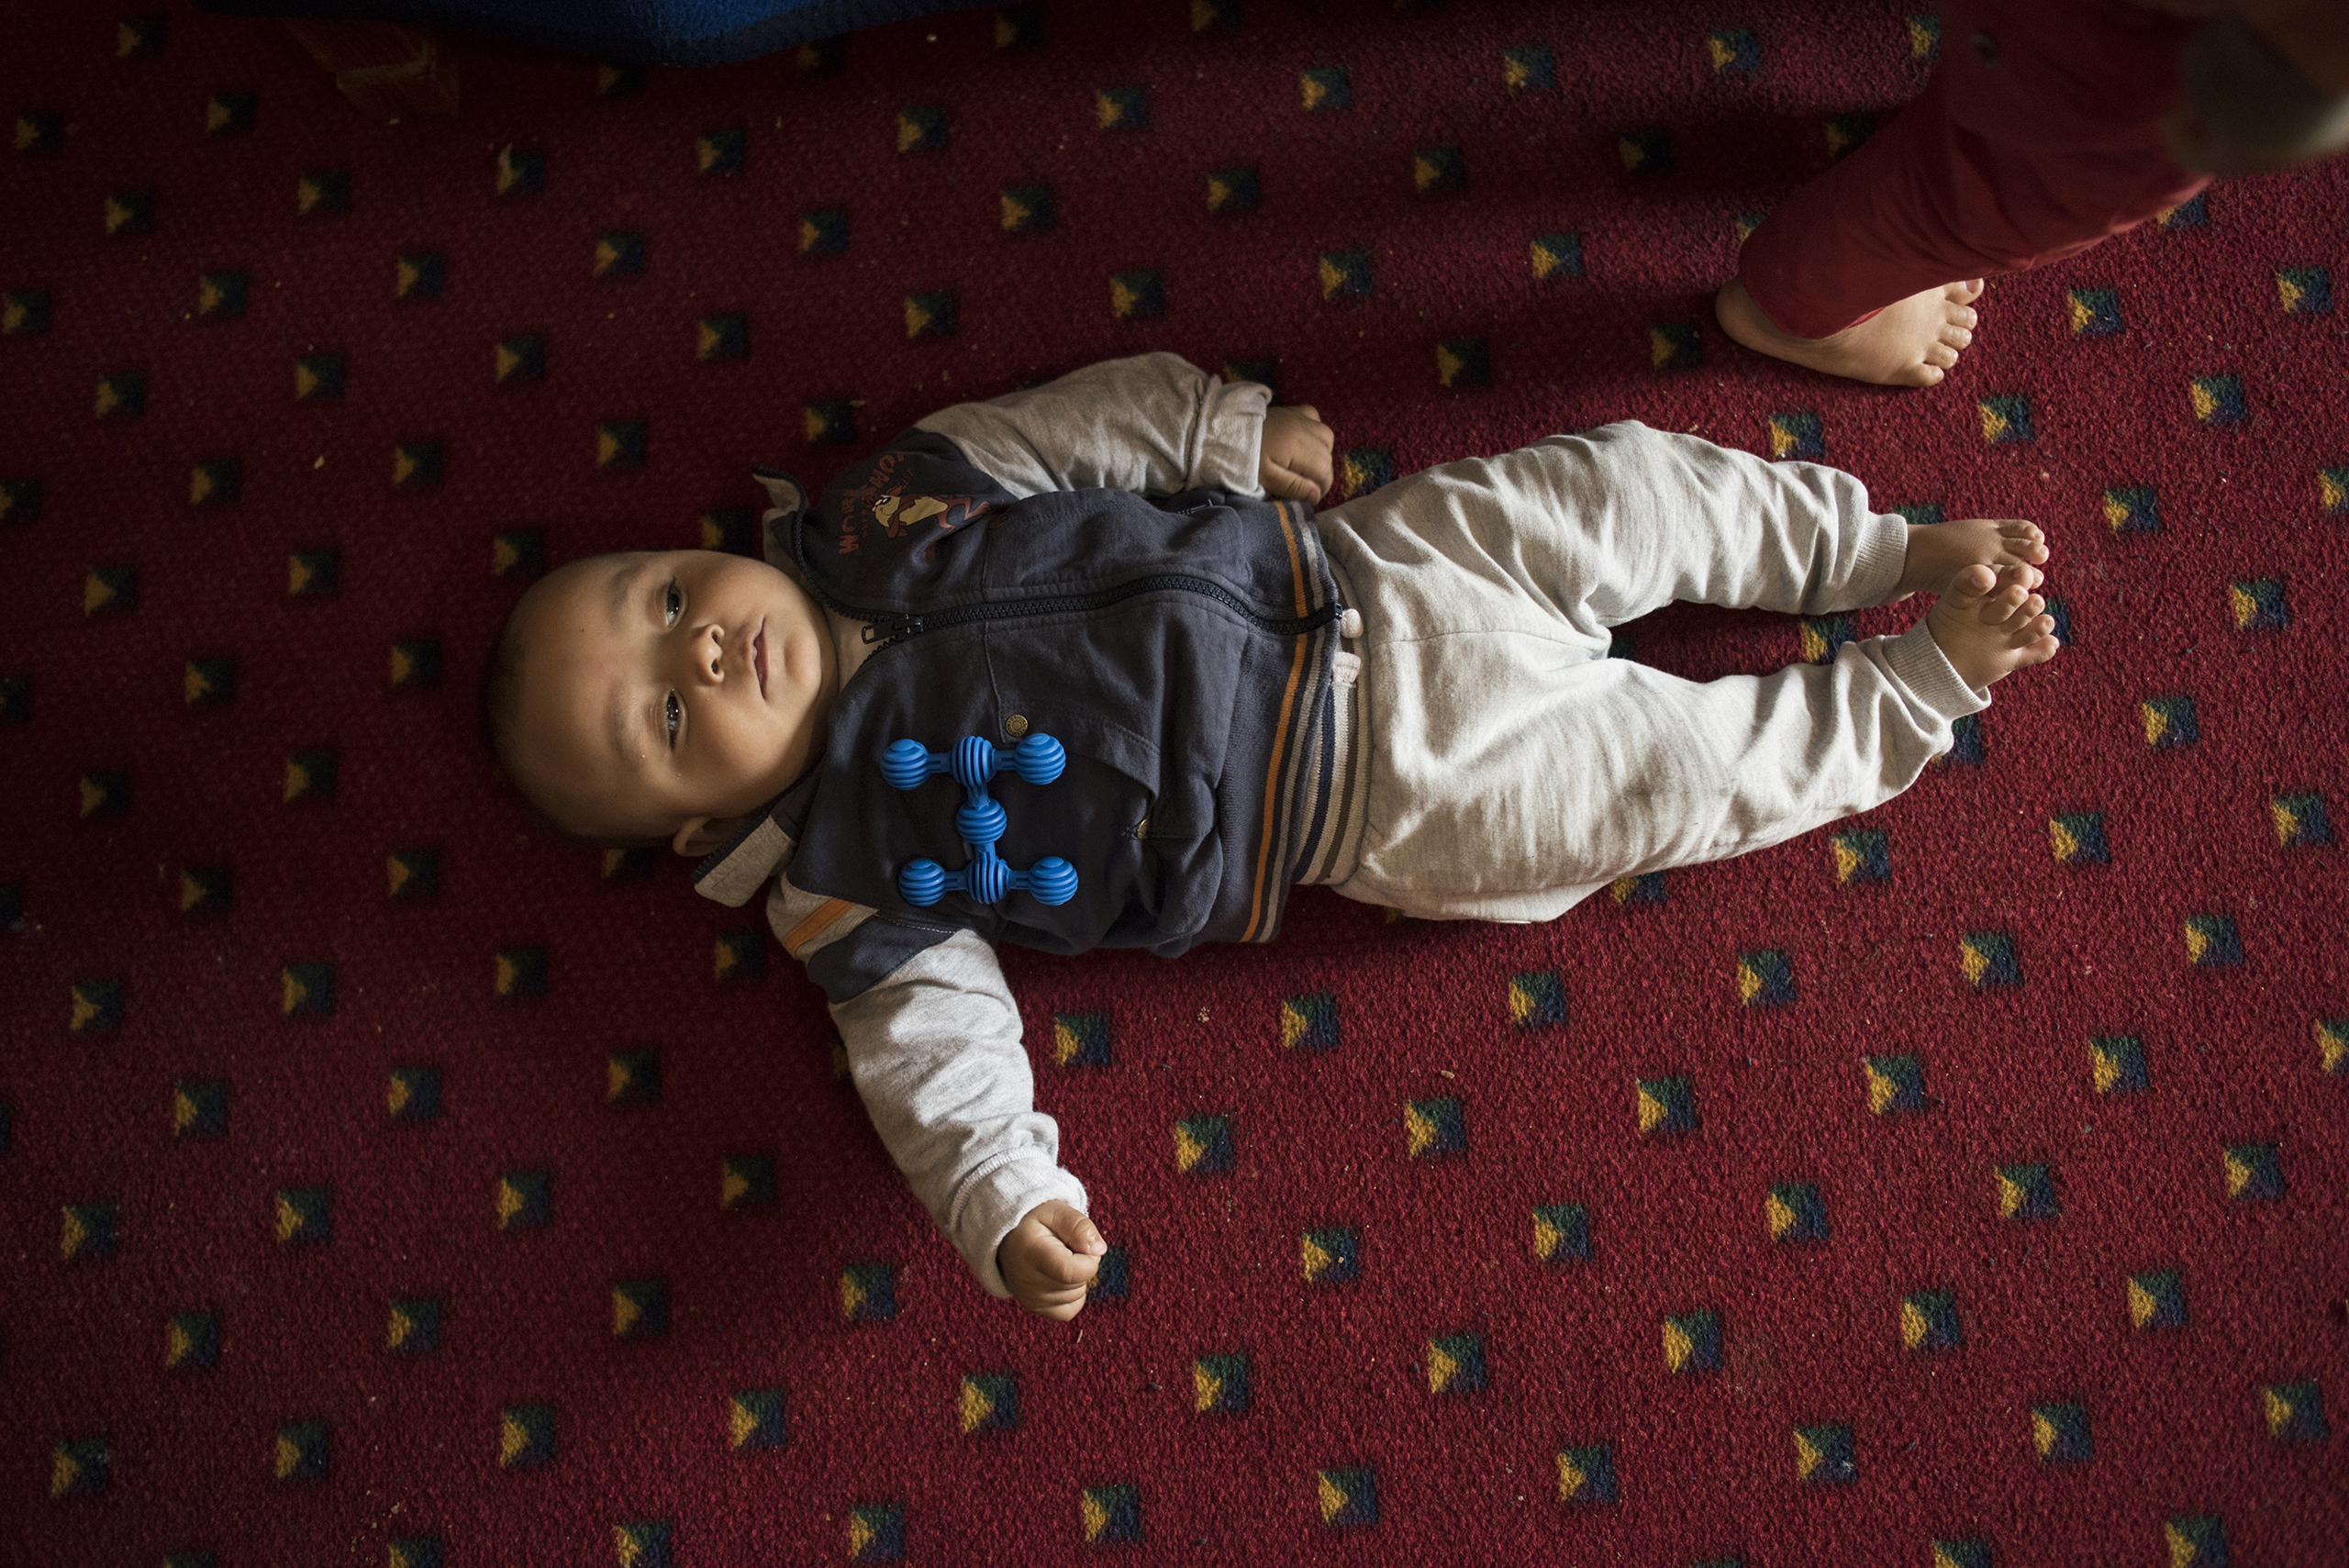 Faraj, now six months old, and the youngest son of 27-year-old Illham Saleh, takes a rest from trying to roll over on the floor at a hotel in Kastoria, Greece, near the Albanian border, March 27, 2017.